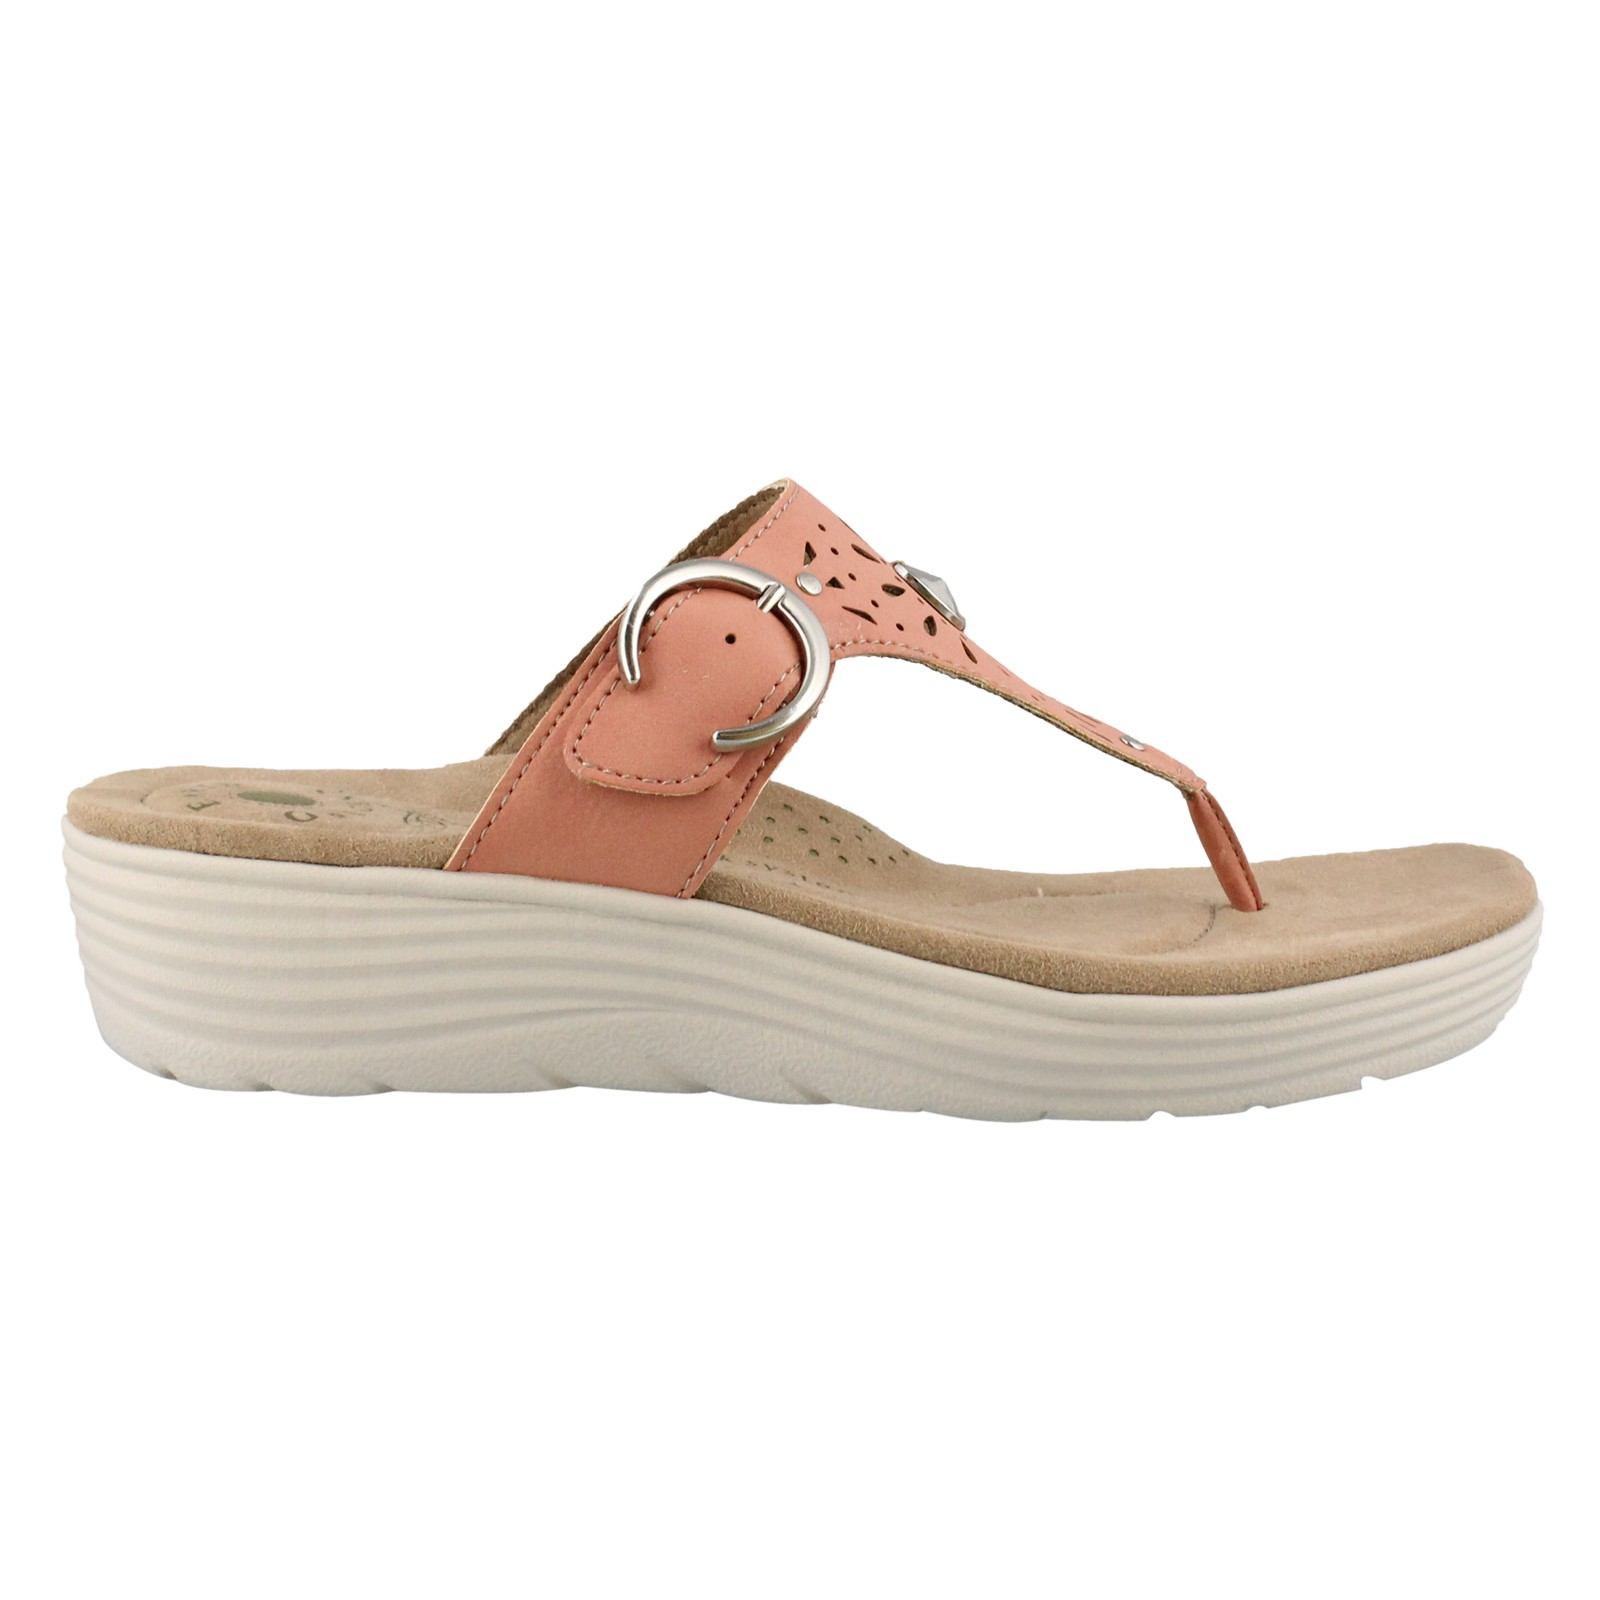 Women's Earth Origins, Grayson Sandals